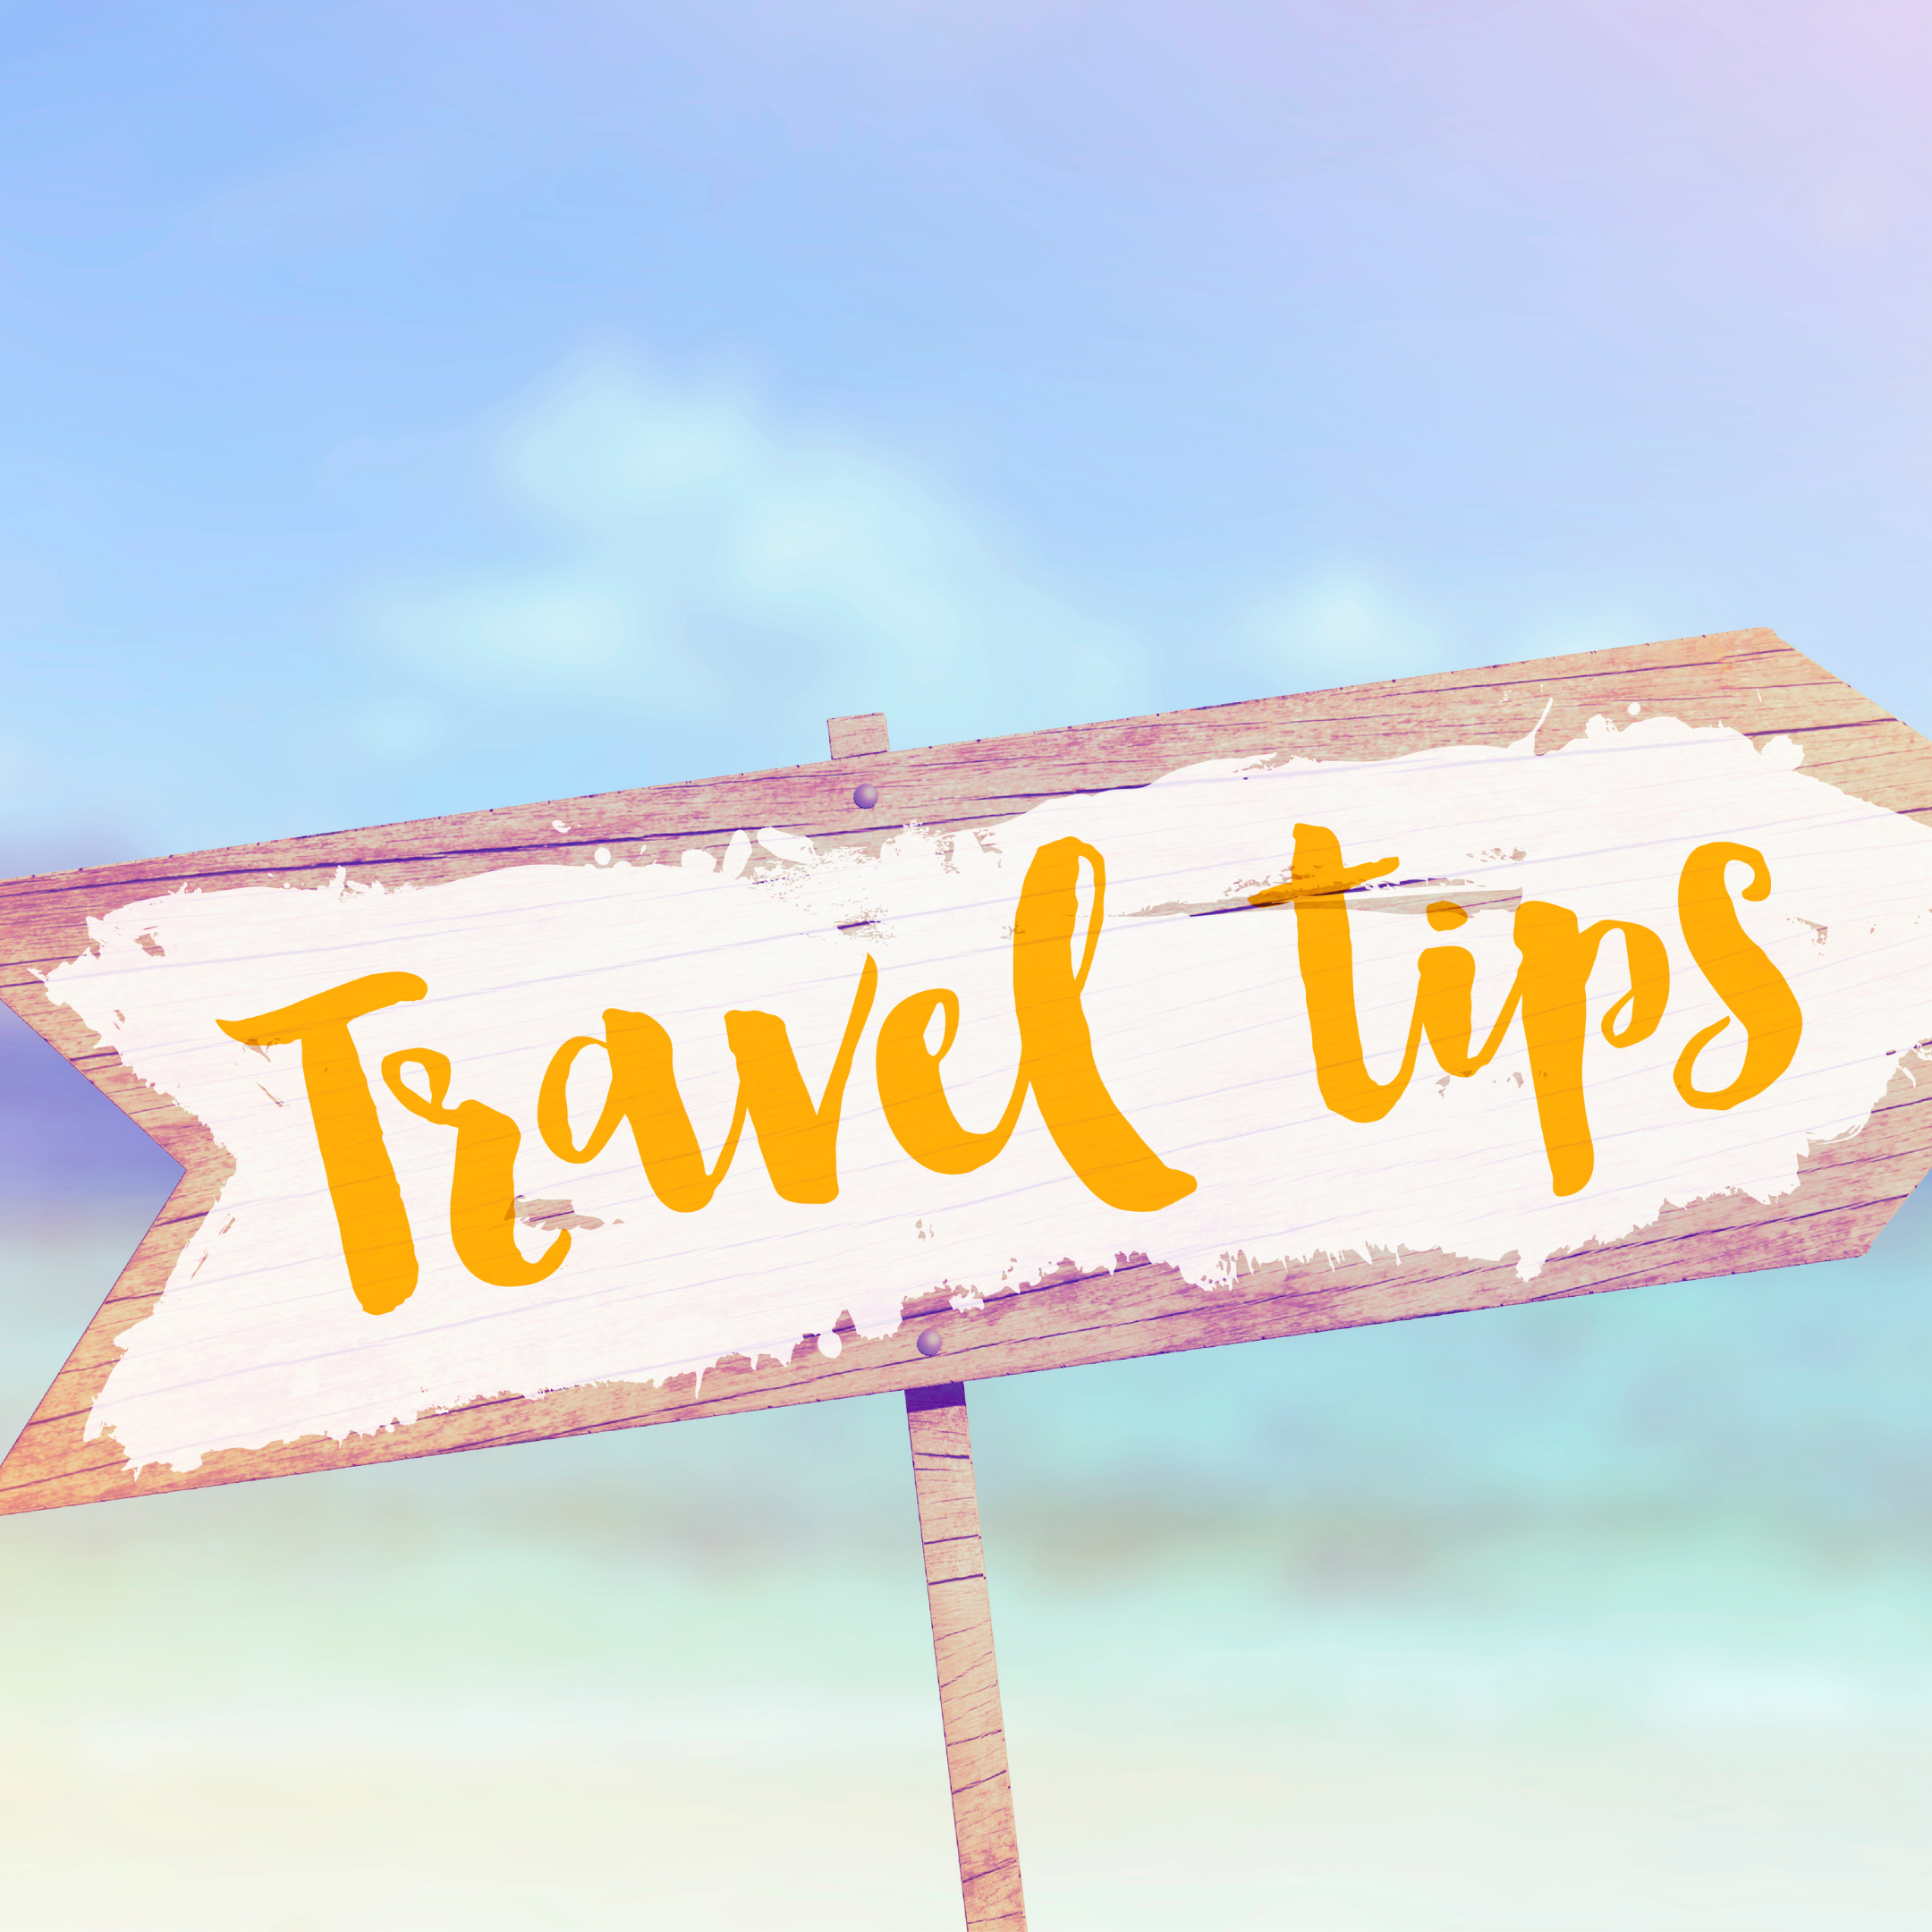 Wooden sign in front of beach scene with travel tips written on the sign